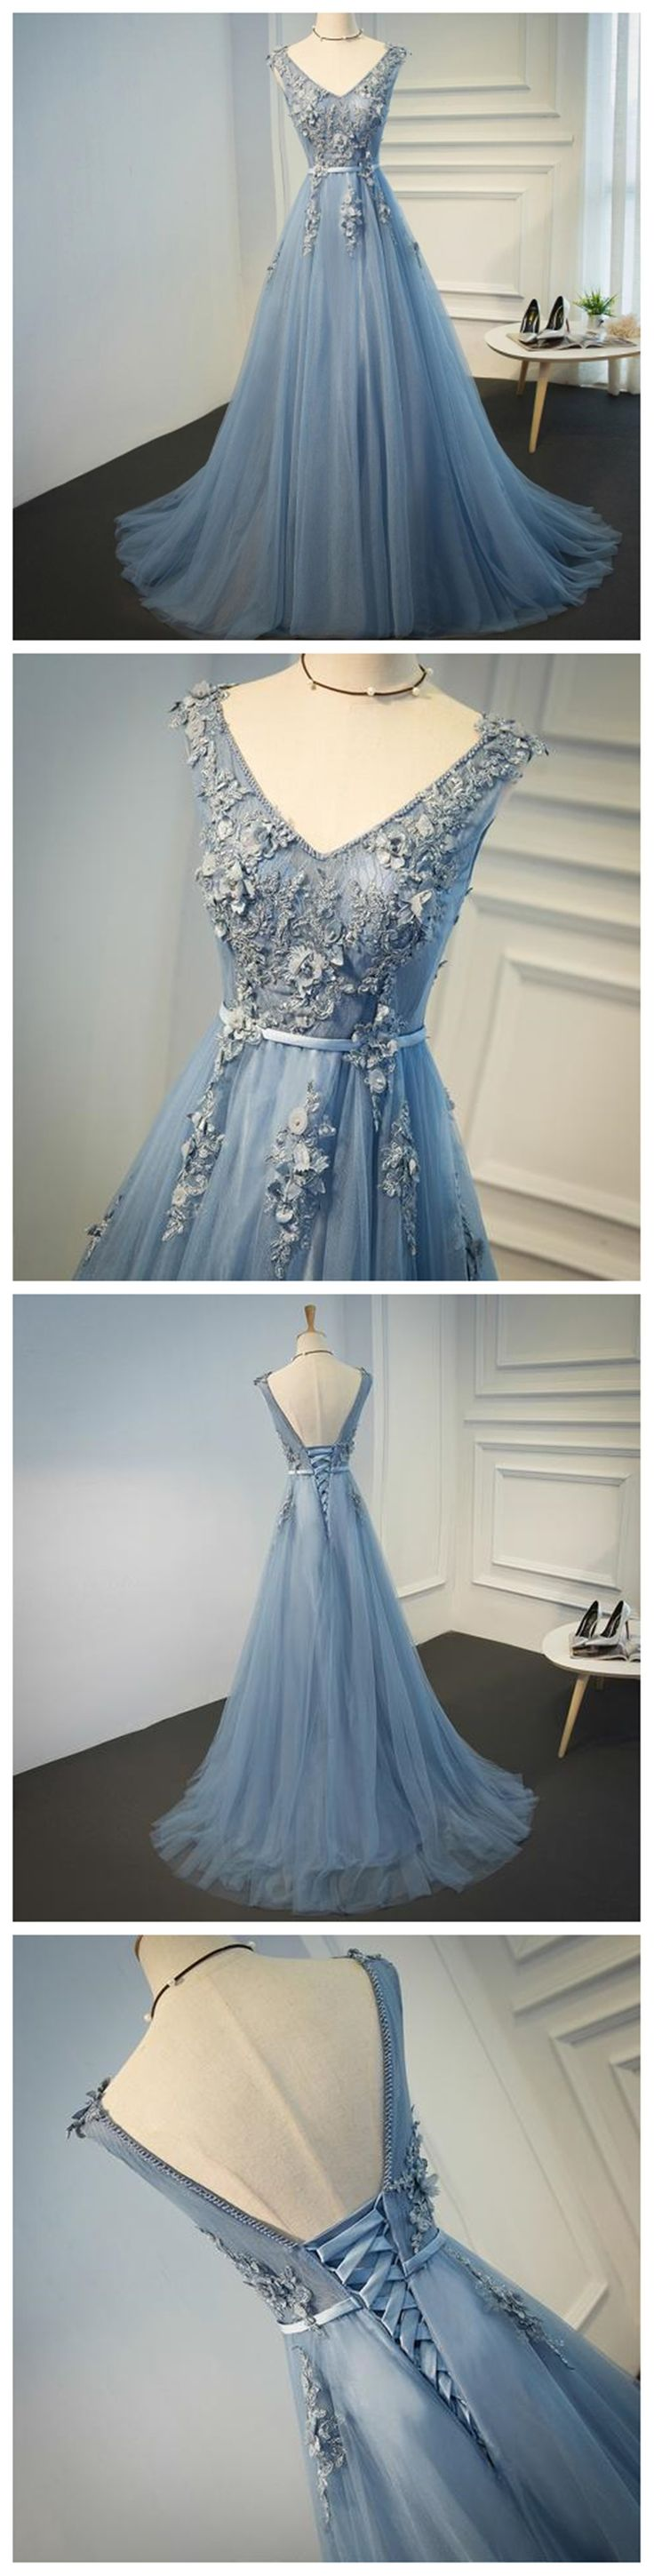 Sexy Backless Dusty Blue V Neckline Lace Beaded Evening Prom Dresses, Cheap Long Party Prom Dresses, Custom 2018 Affordable Prom Dresses, 18057